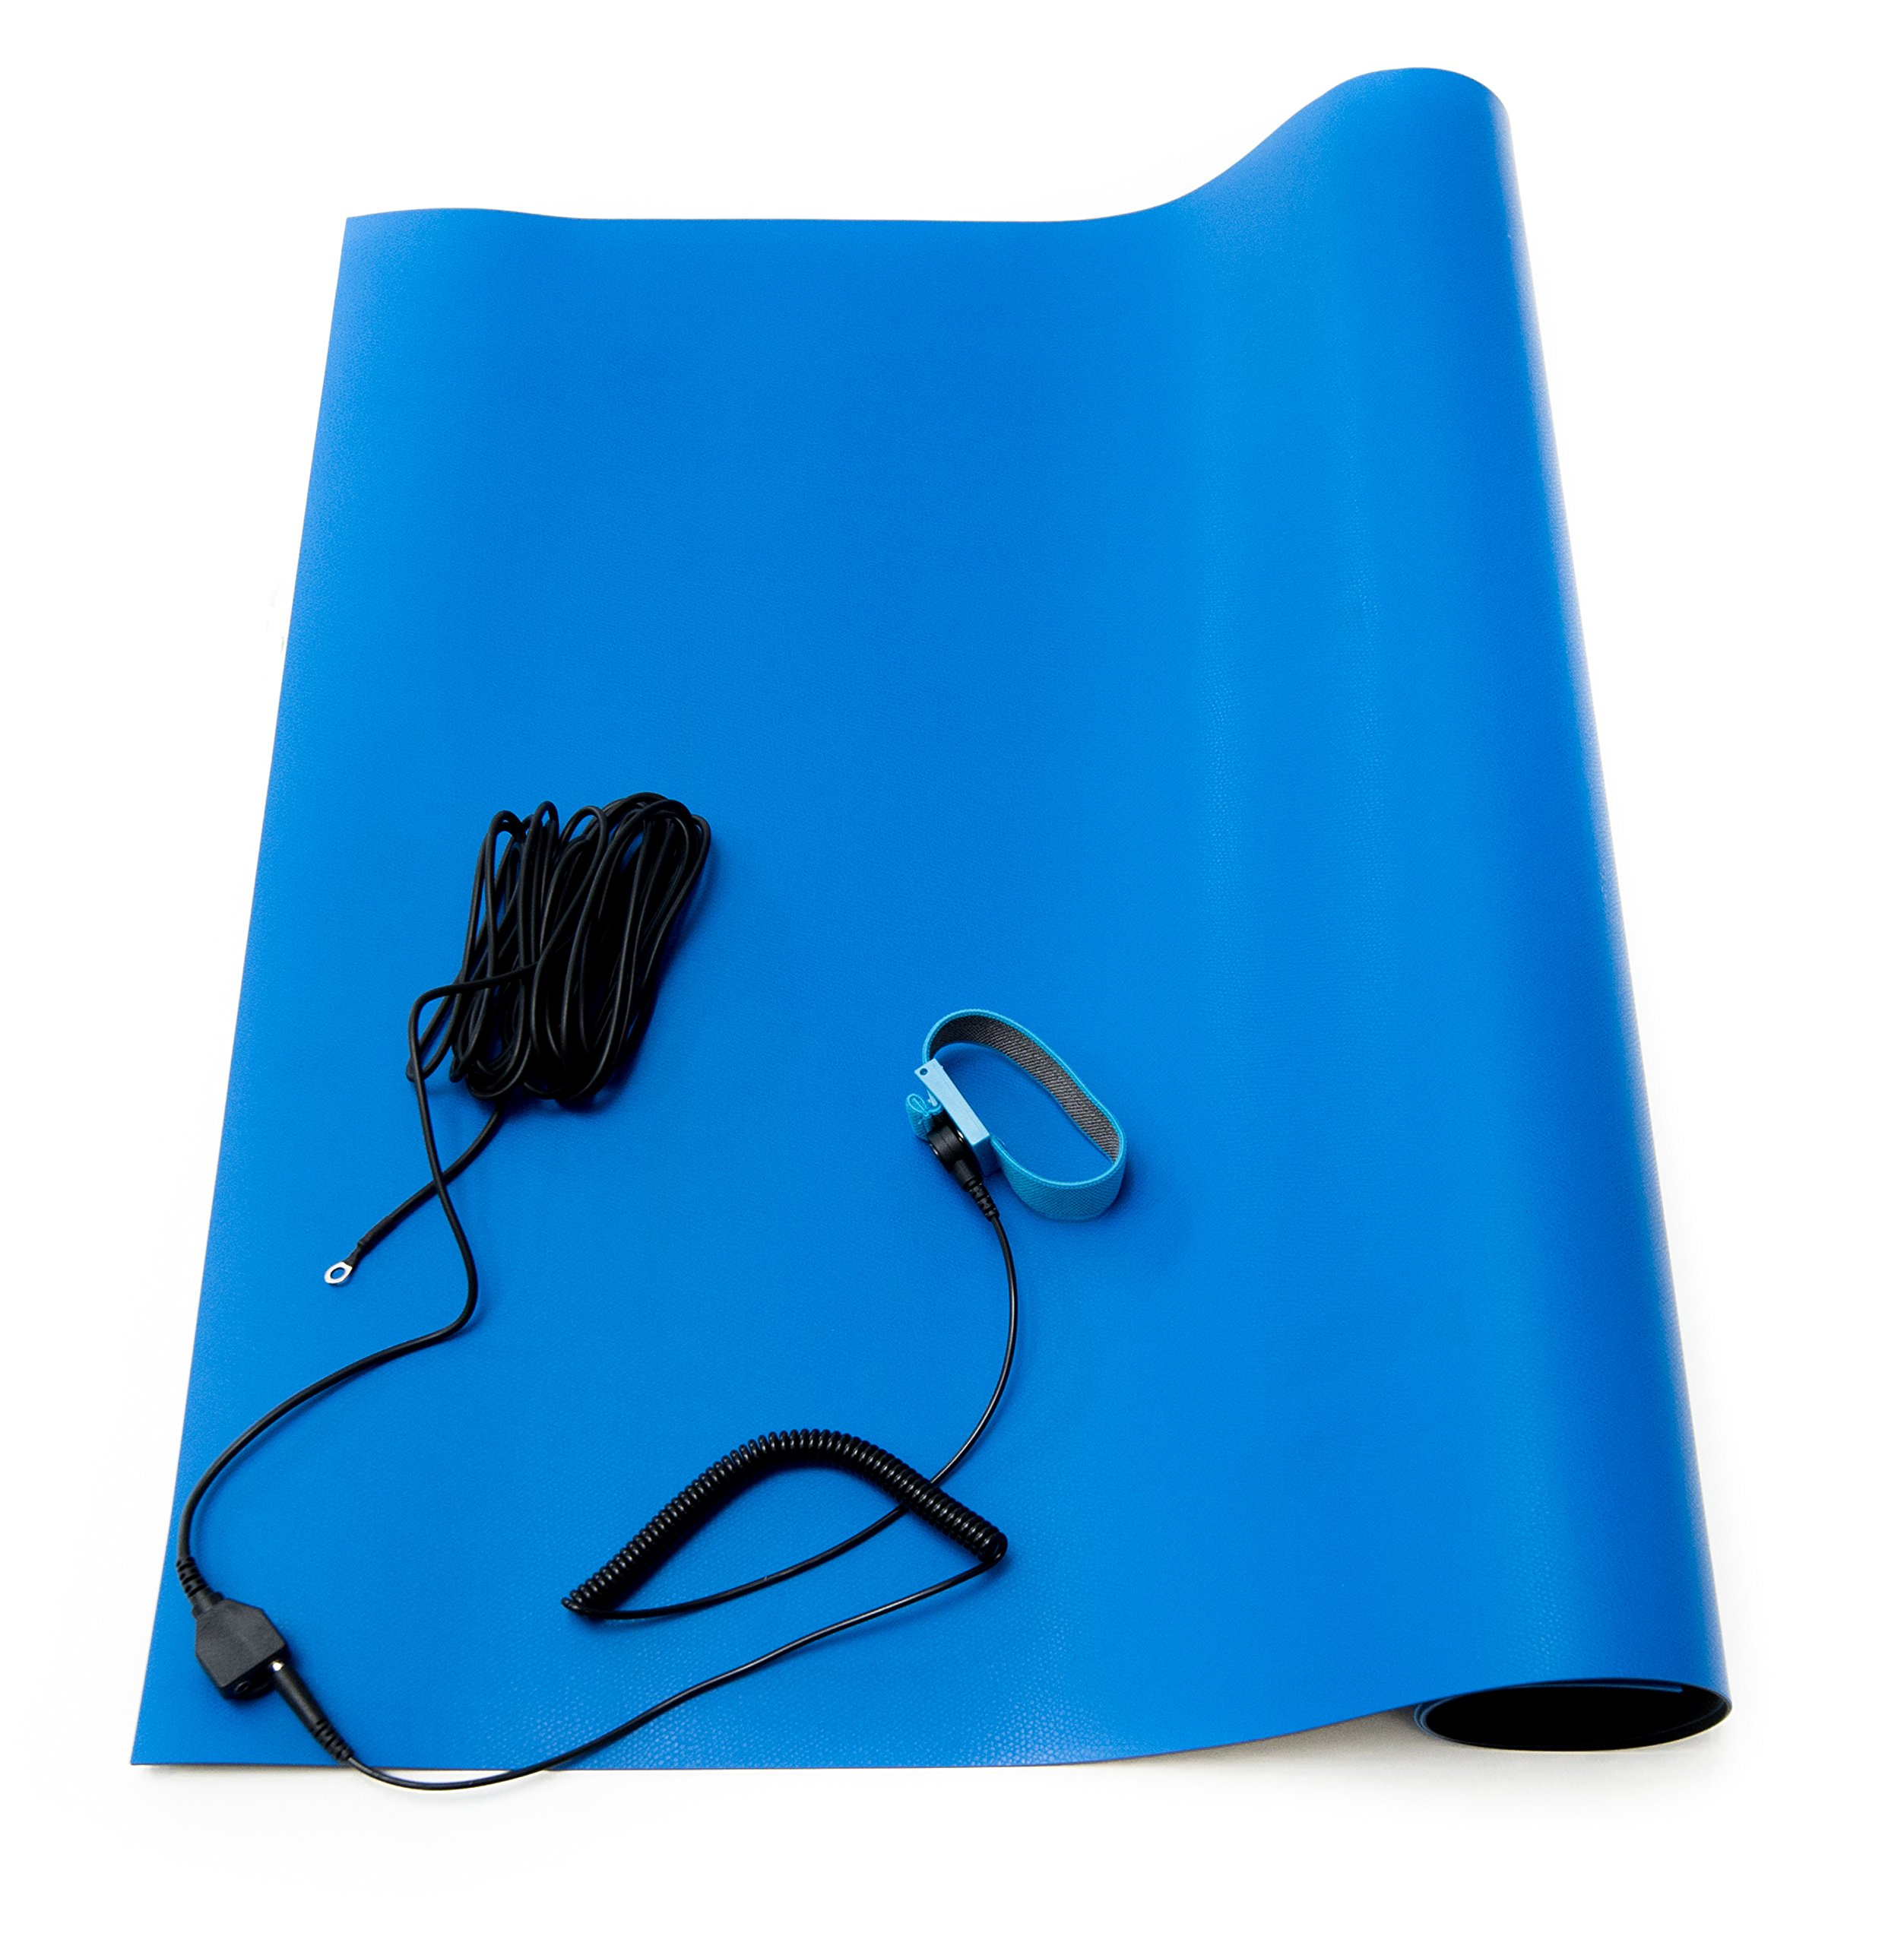 Bertech ESD High Temperature Rubber Mat Kit with a Wrist Strap and Grounding Cord, 18'' Wide x 24'' Long x 0.06'' Thick, Blue, Made in USA